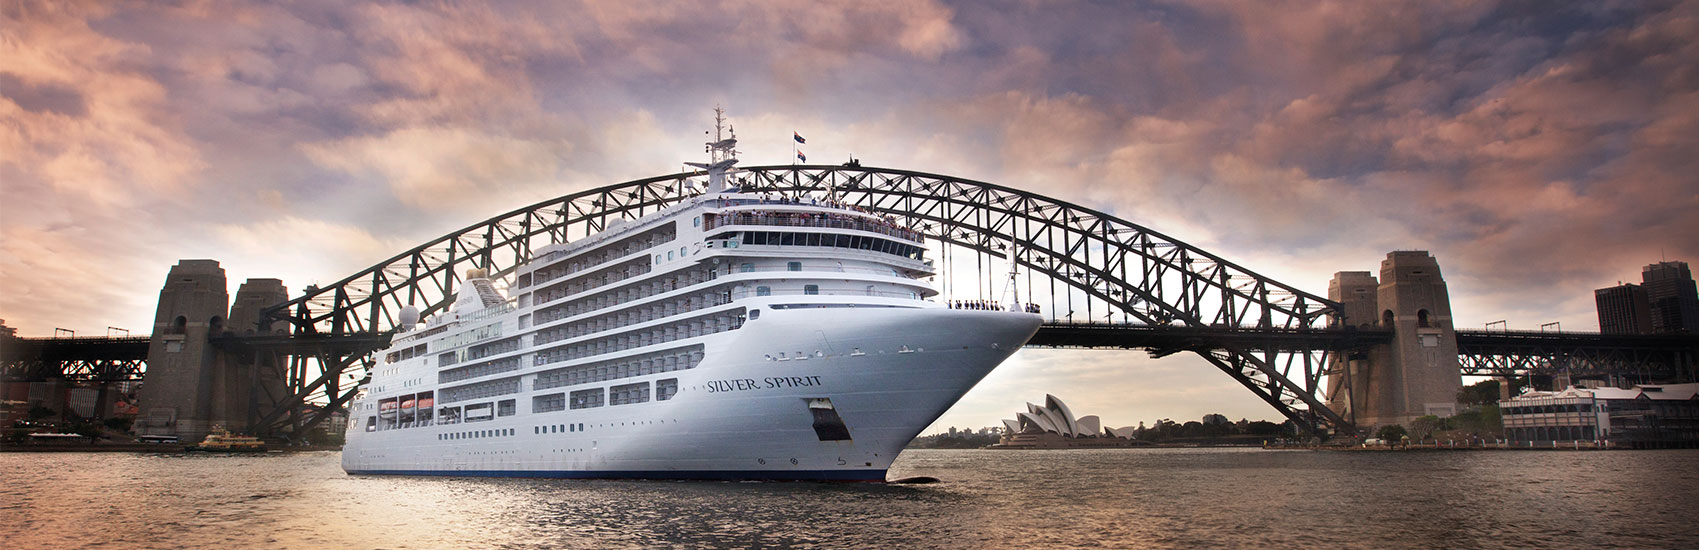 All-Inclusive Offer to Australia & New Zealand with Silversea Cruises 0